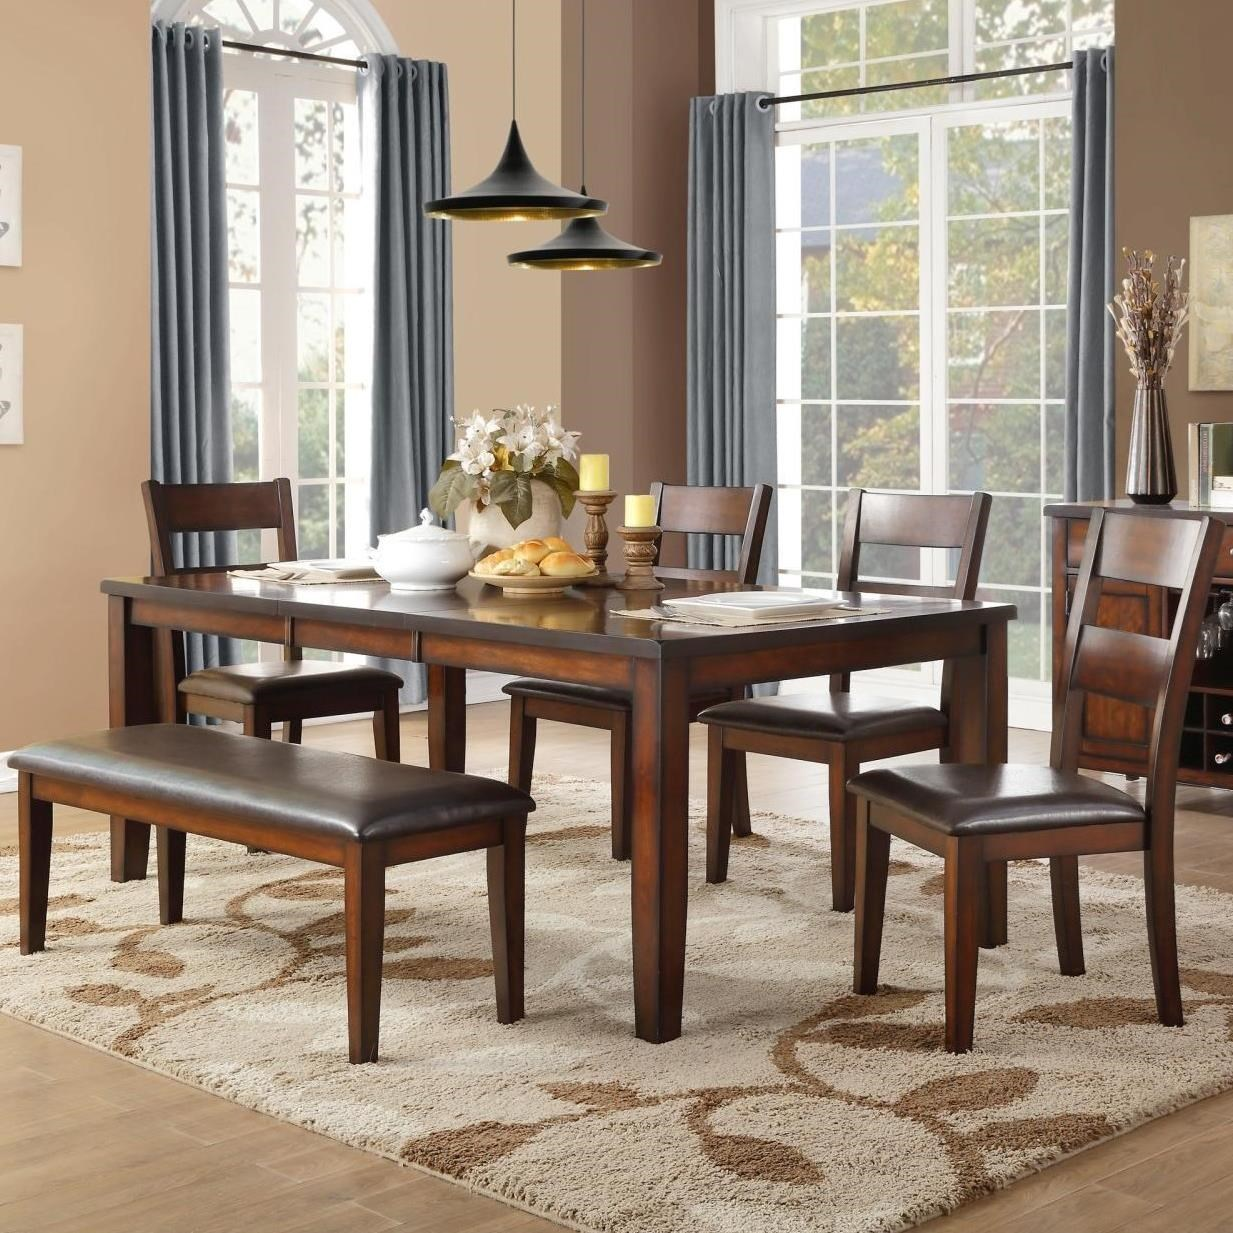 Mantello Table & Chair Set with Bench by Homelegance at Beck's Furniture